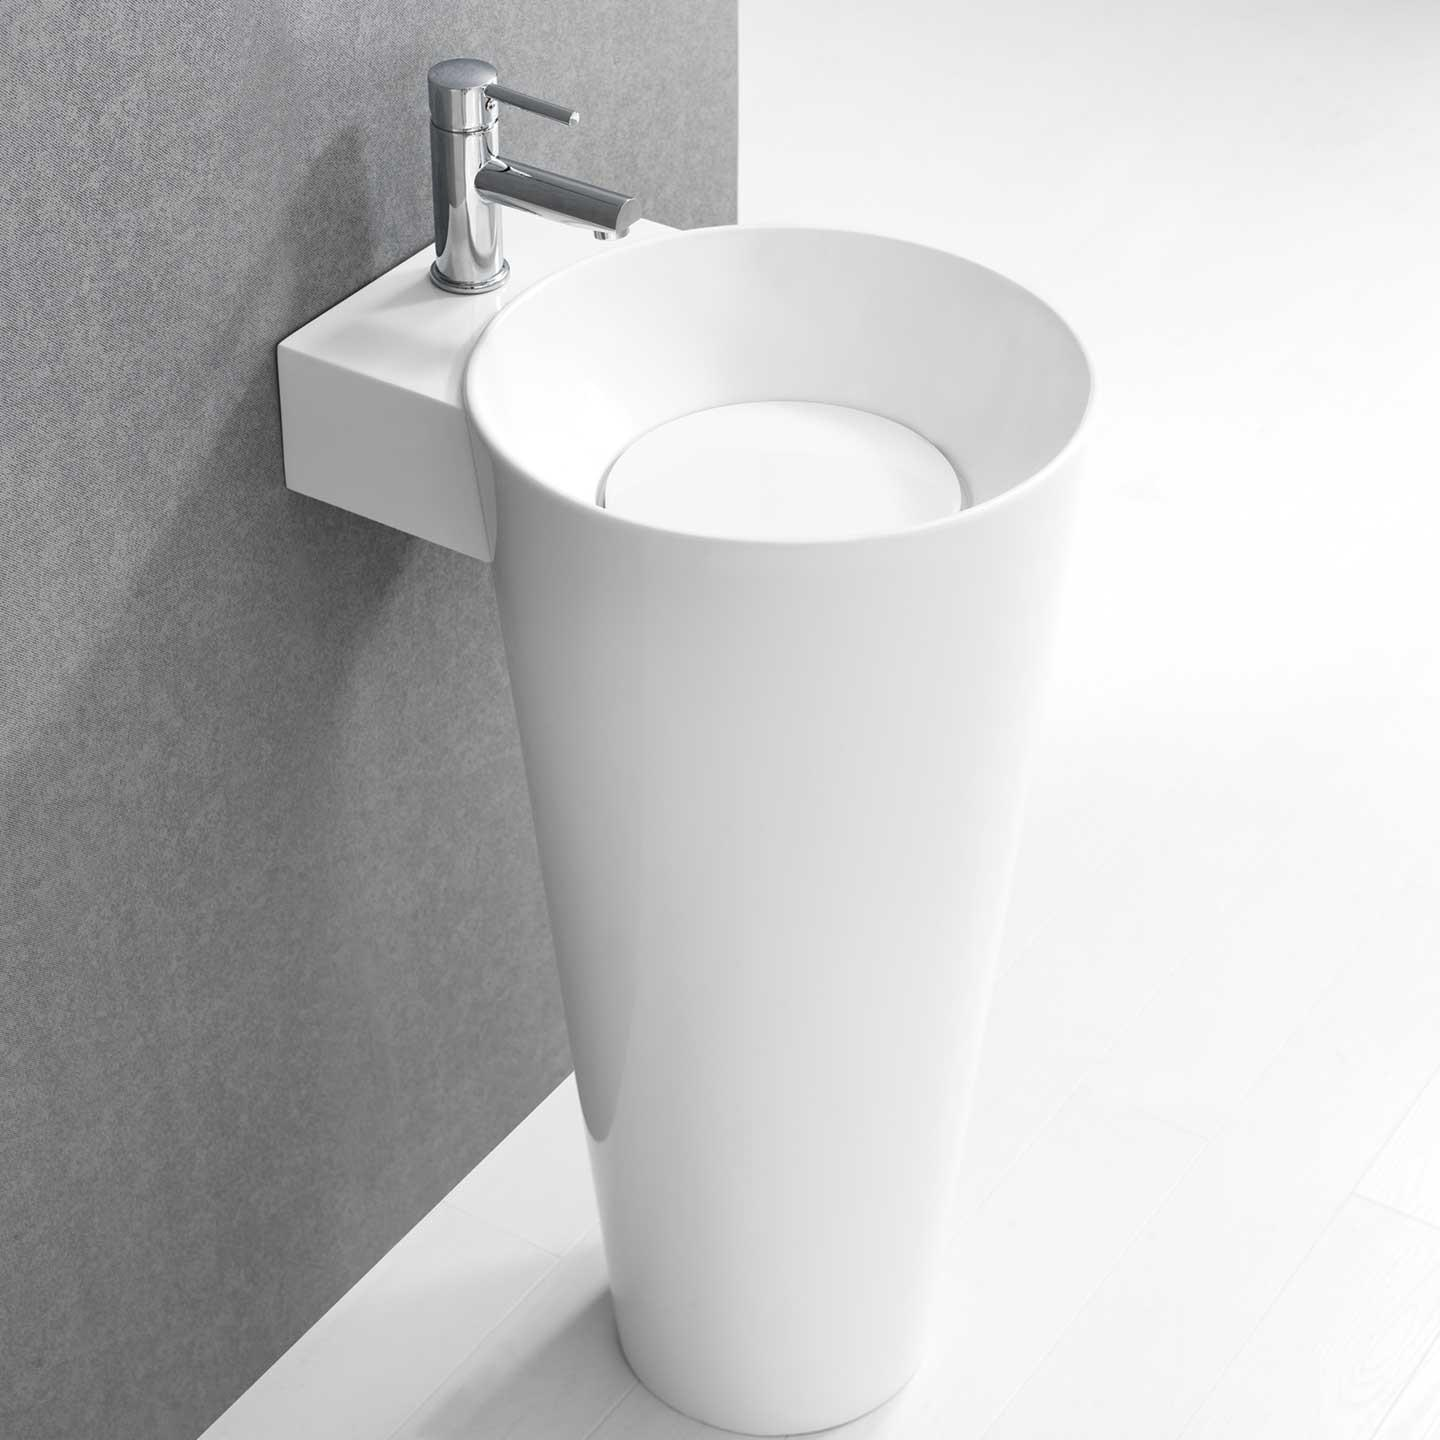 Design Modern Pedestal Sink Some Rooms Decoras